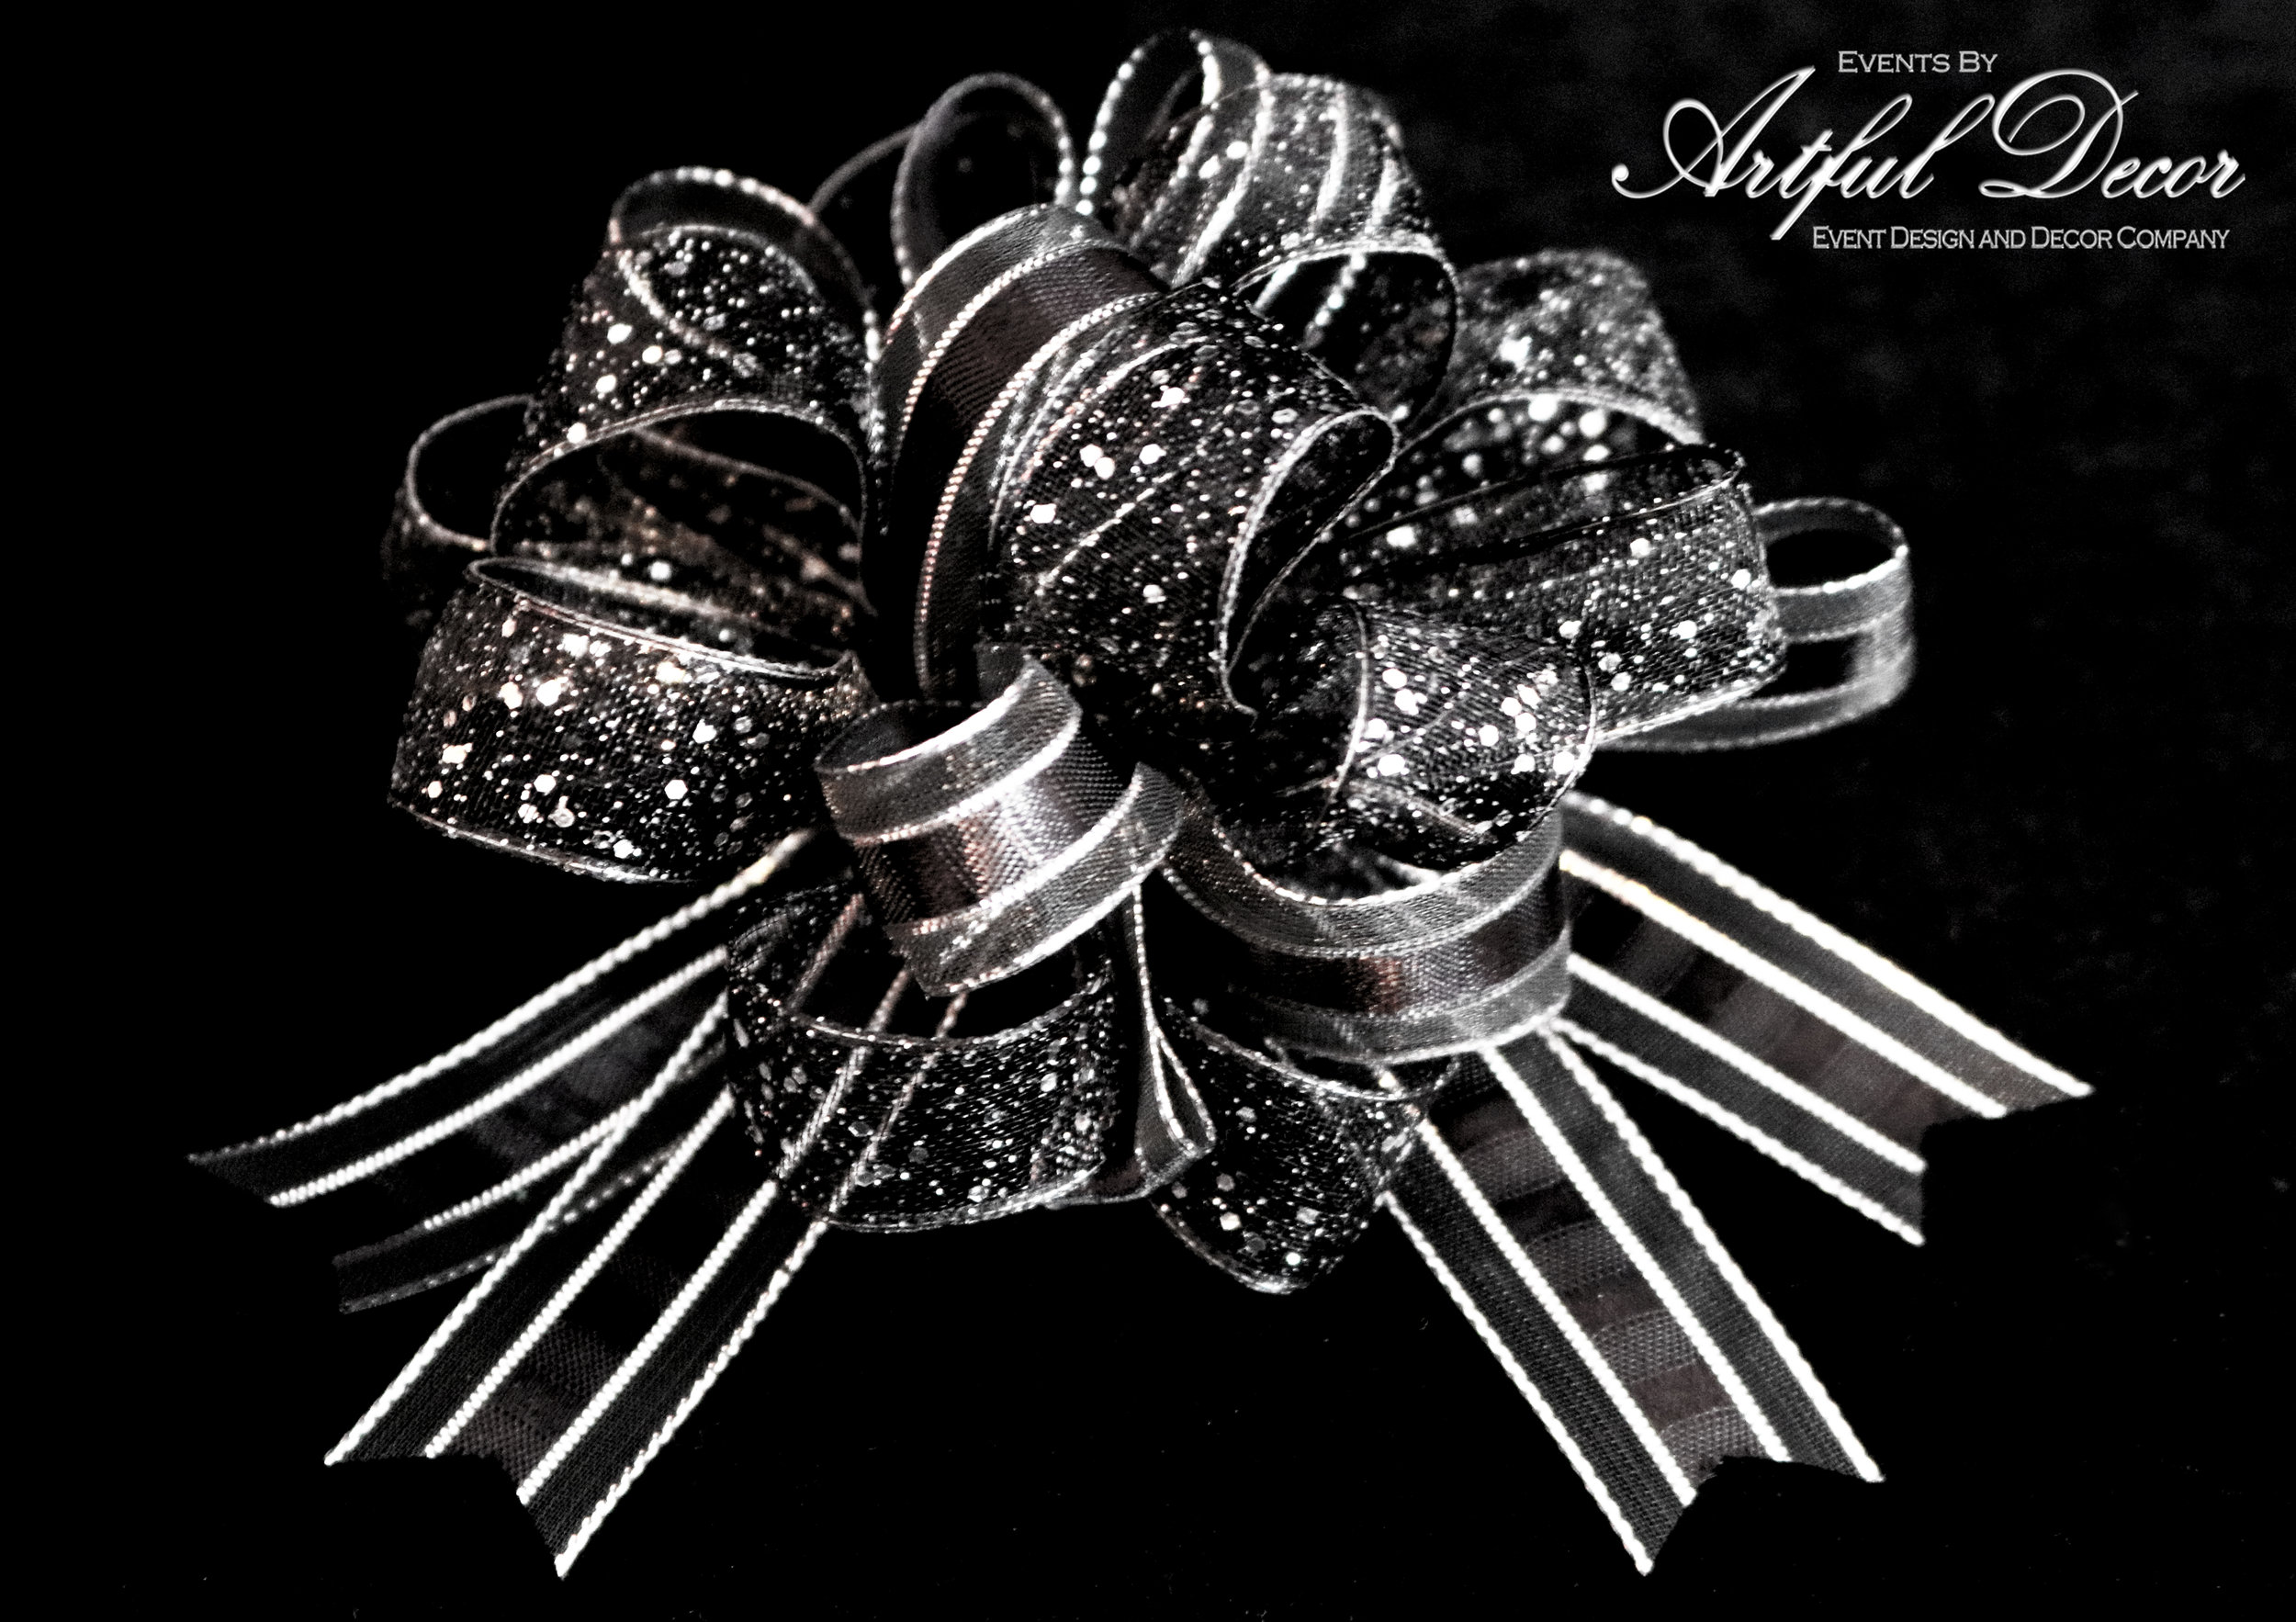 Onyx Chiffon / Chrome Stripe & Onyx Chiffon / Chrome Sparkle